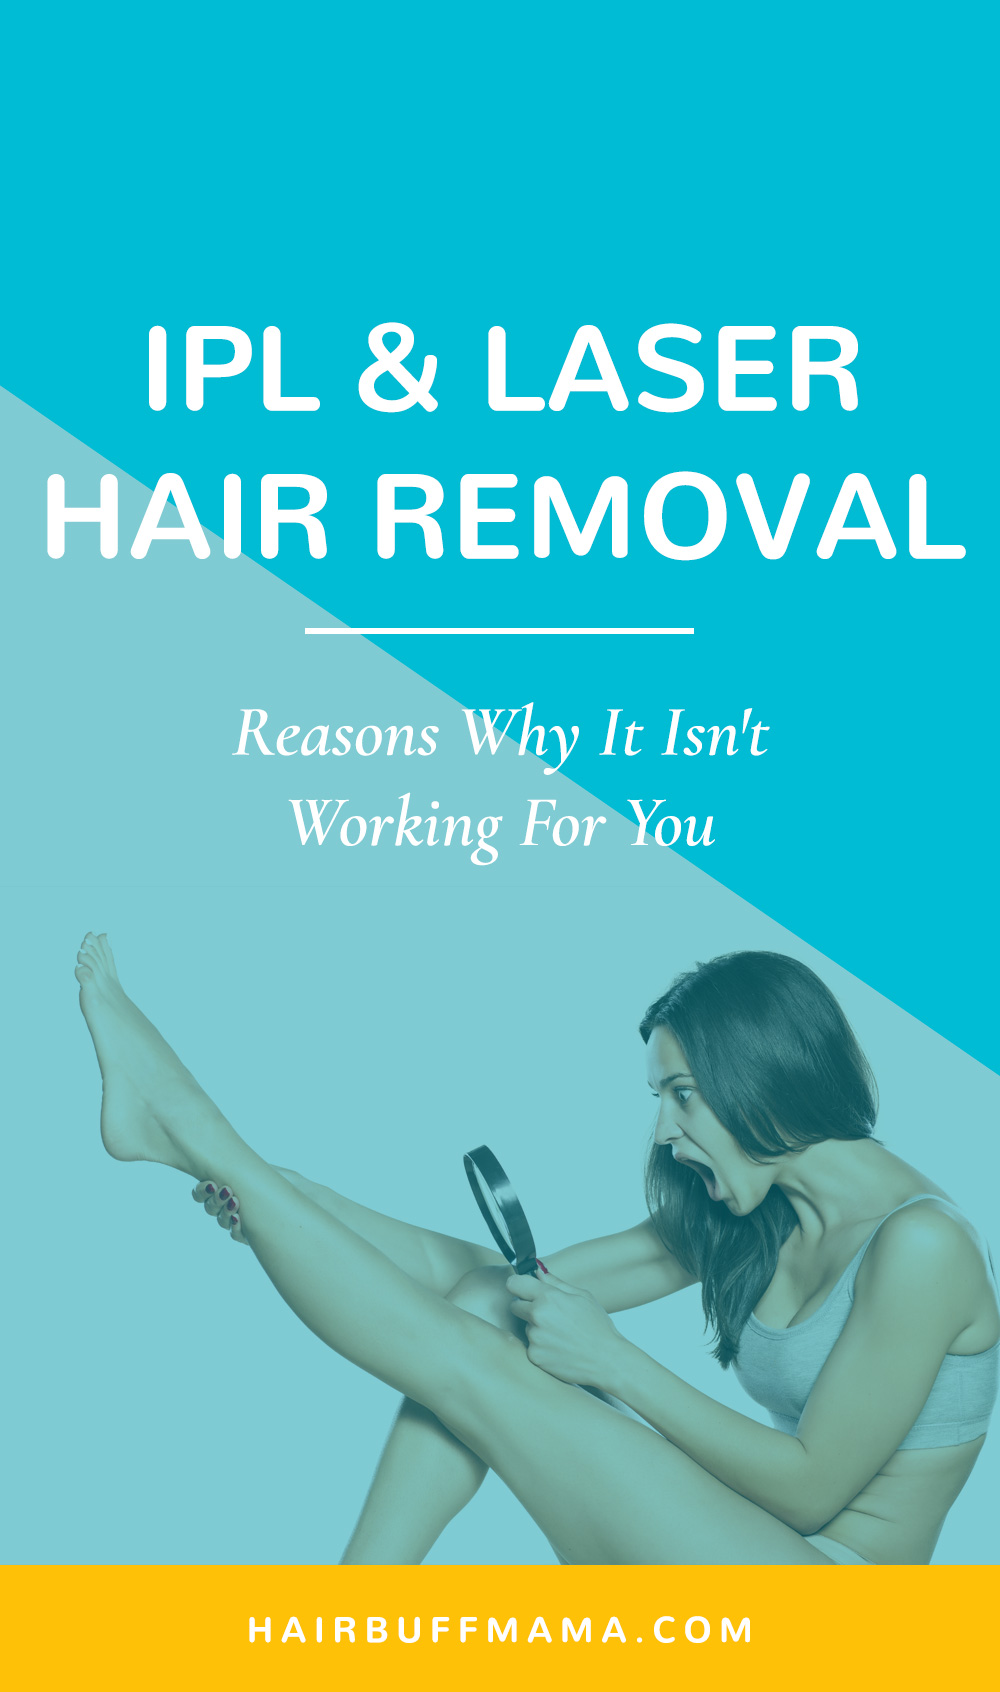 Home-Use IPL Hair Removal that Didn't Work